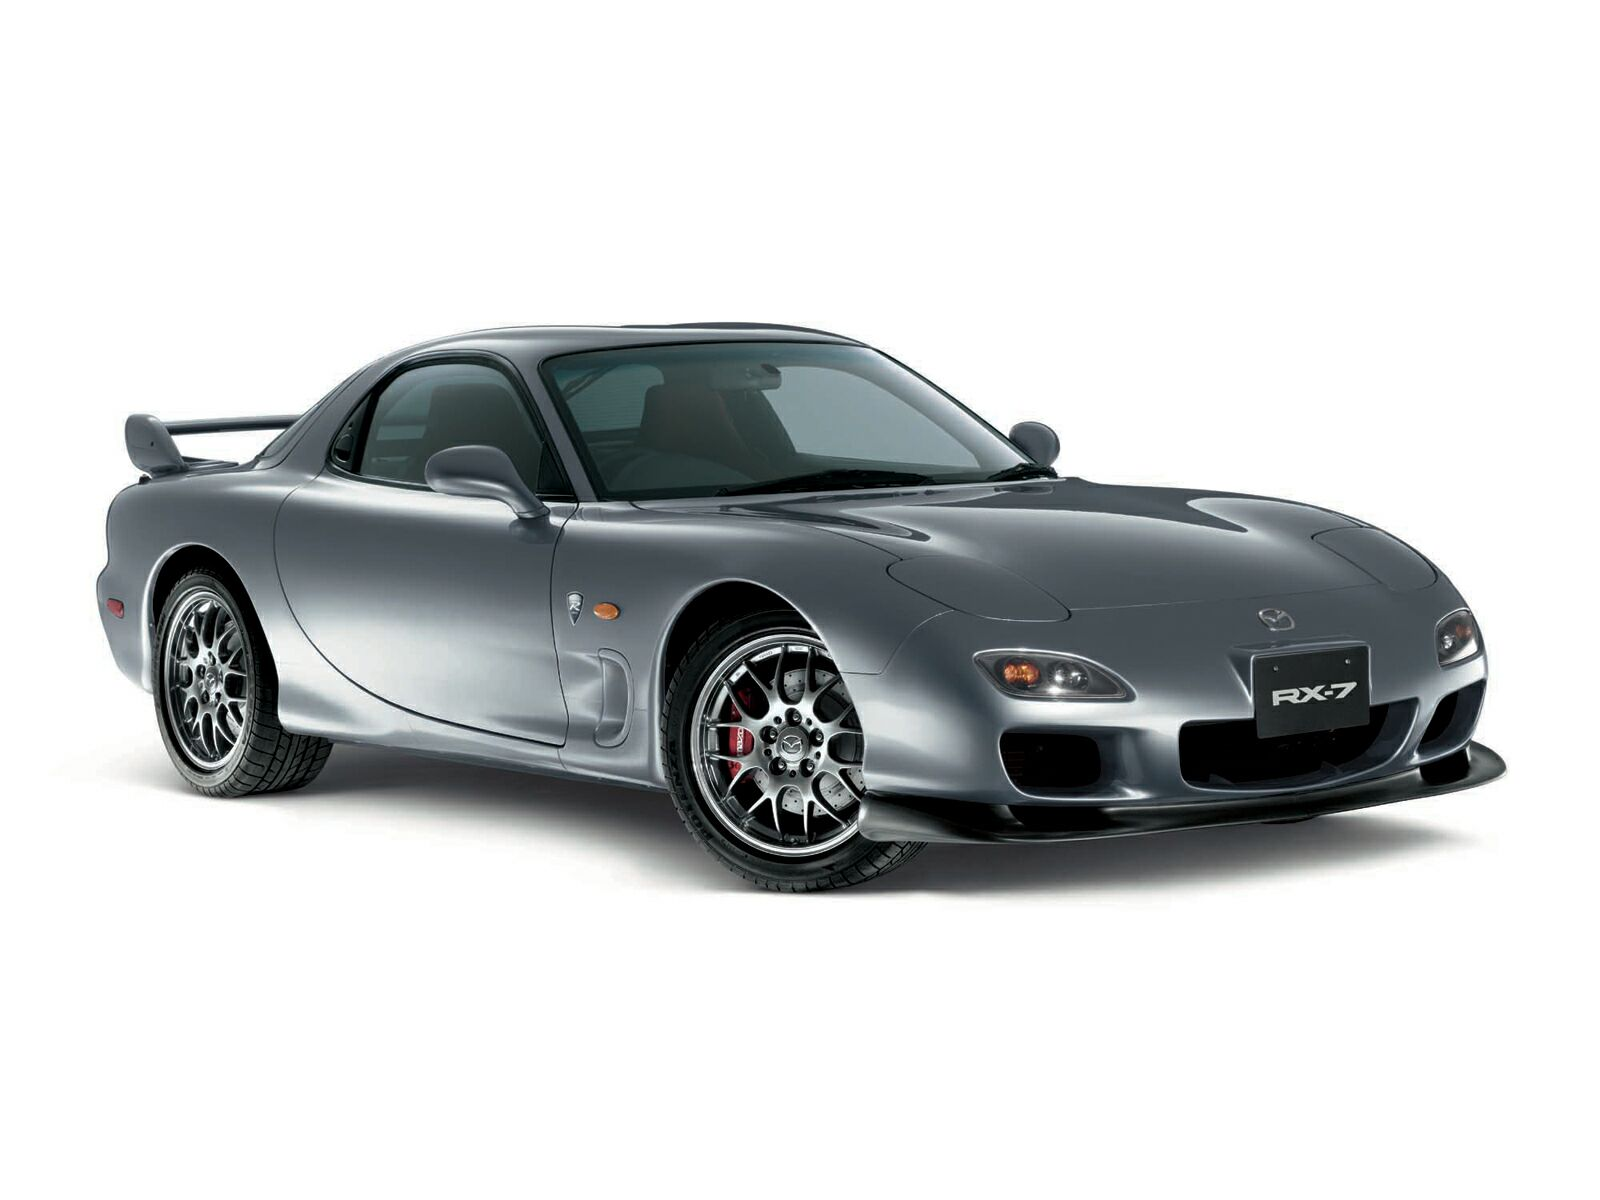 Mazda rx 7 a sports car featured with 1146 cc twin rotor wankel rotary engine